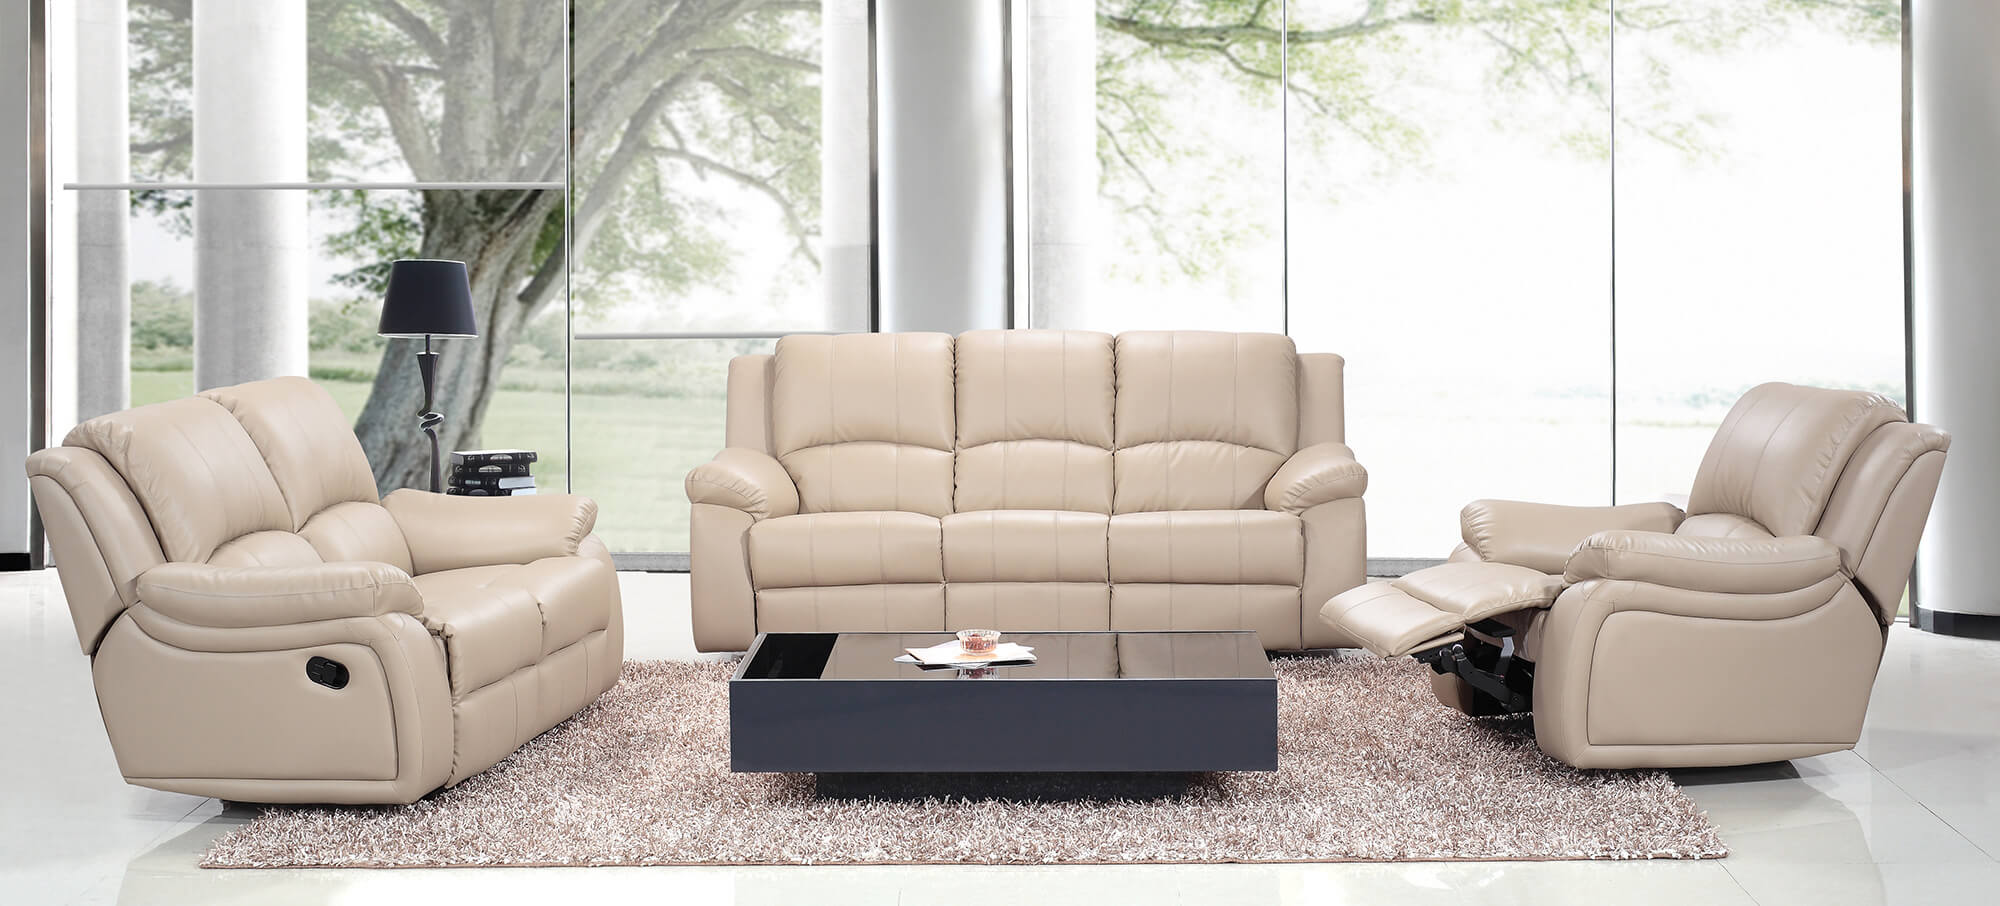 cream leather manual recliner sofa set